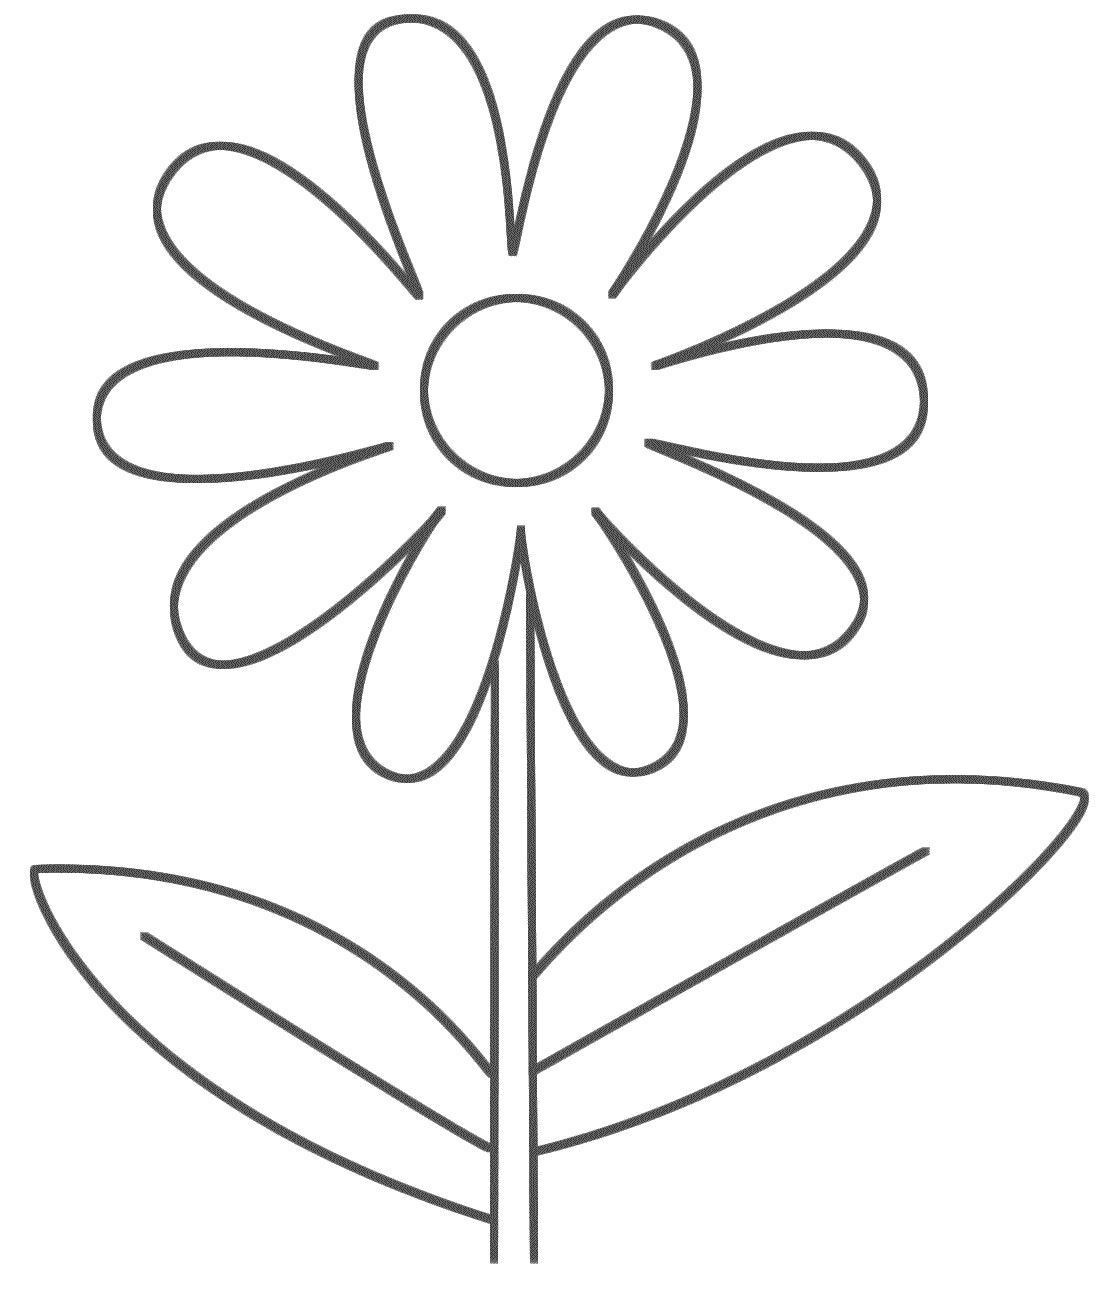 Uncategorized Flower Drawings For Kids simple coloring pages 5 printables pinterest 3d pen this flower page features a picture of large to color the is printable and can be used in classroo